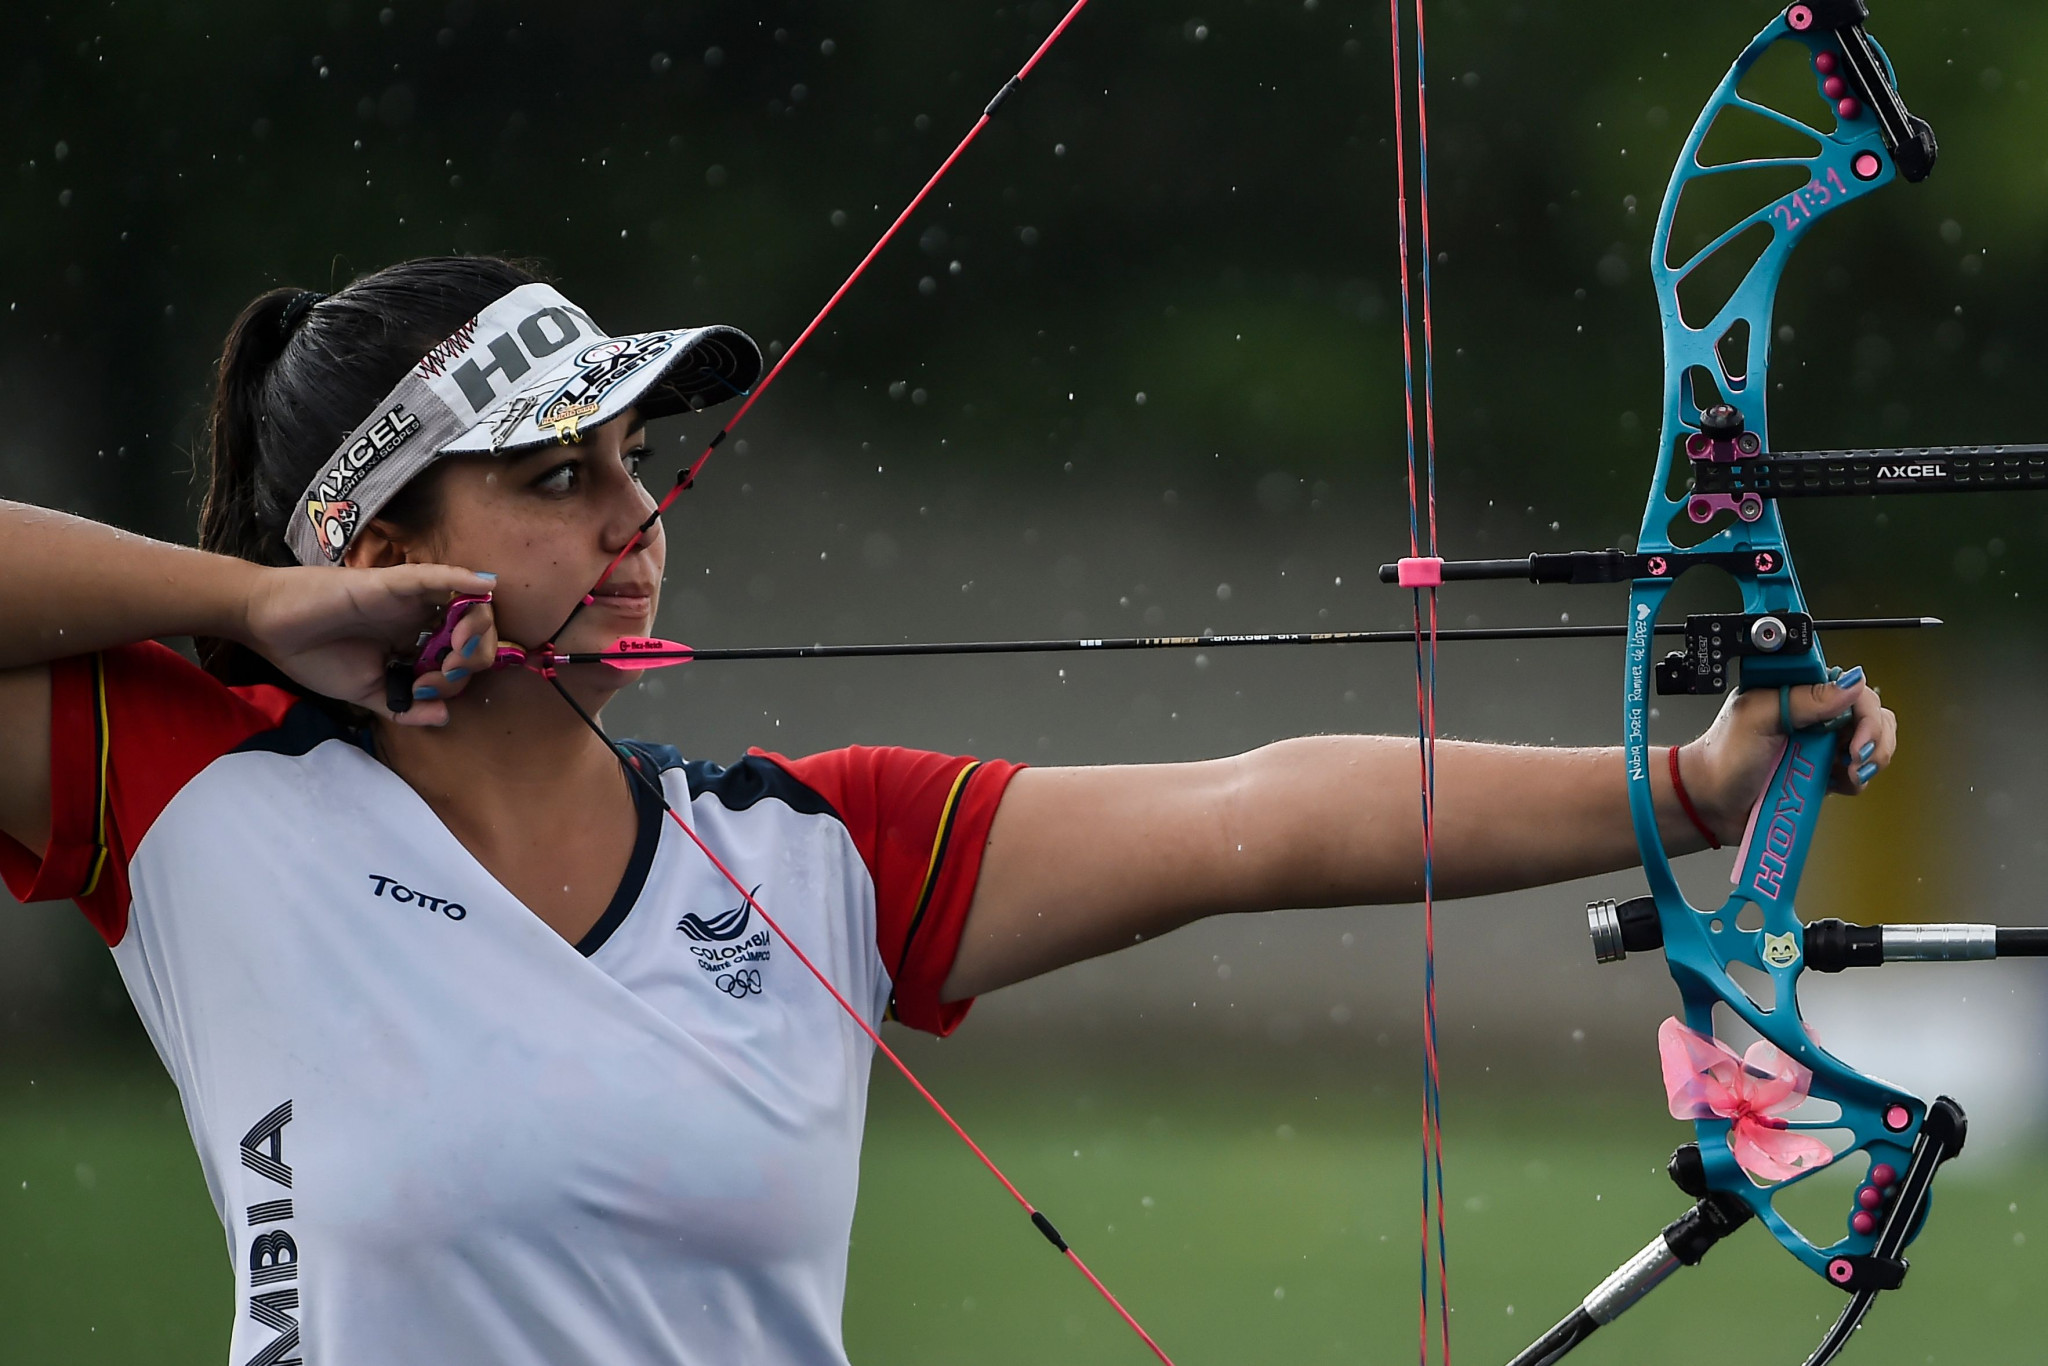 Lopez leads compound qualification on home soil at Pan American Archery Championships